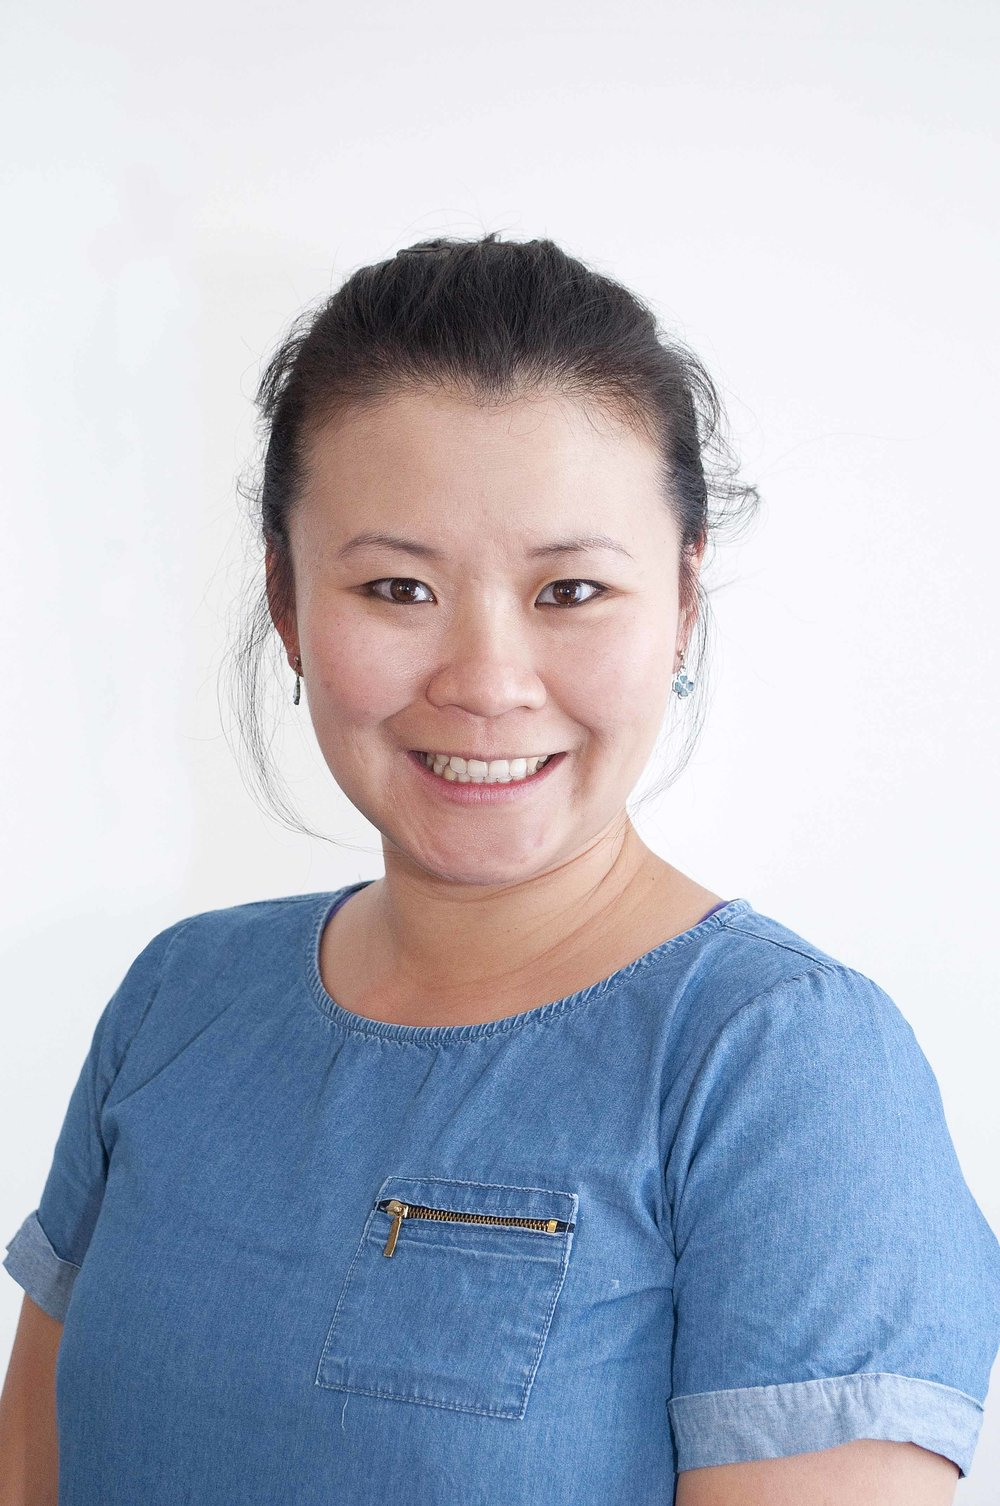 "Danita ""Dani"" Ooi  Senior Occupational Therapist  Dani has been working with O.T.WEST since 2010. She currently works with us part-time as she enjoys variety of alternative OT positions.  Dani began her OT career in 2008 at a Nursing Home where she developed skills in seating, pressure care and pain management. She joined O.T.WEST in 2010 and worked in our hospital contract at SJOG Subiaco in orthopedic, geriatric and palliative care.  Currently Dani works in our community home visiting service doing pre/post-discharge home-visits, rehabilitation, seating and equipment prescription, home modifications and home care package assessments.  Through Dani's other OT roles she has gained  extensive  experience in ergonomics, pain management, soft tissue, seating and wheelchair prescription, equipment prescription, return to work and manual handling training.   Special Interest:  working with adults in seating, pressure care, home modifications, pain management and manual handling services.   Favourite things:  Gizzy her cat, art, crafts, music, travel, family and friends.   Favourite Quote : Be yourself, everyone else is already taken.  AND success is no accident. It is hard work, perseverance, learning, studying, sacrifice, and most of all, love of what you are doing."